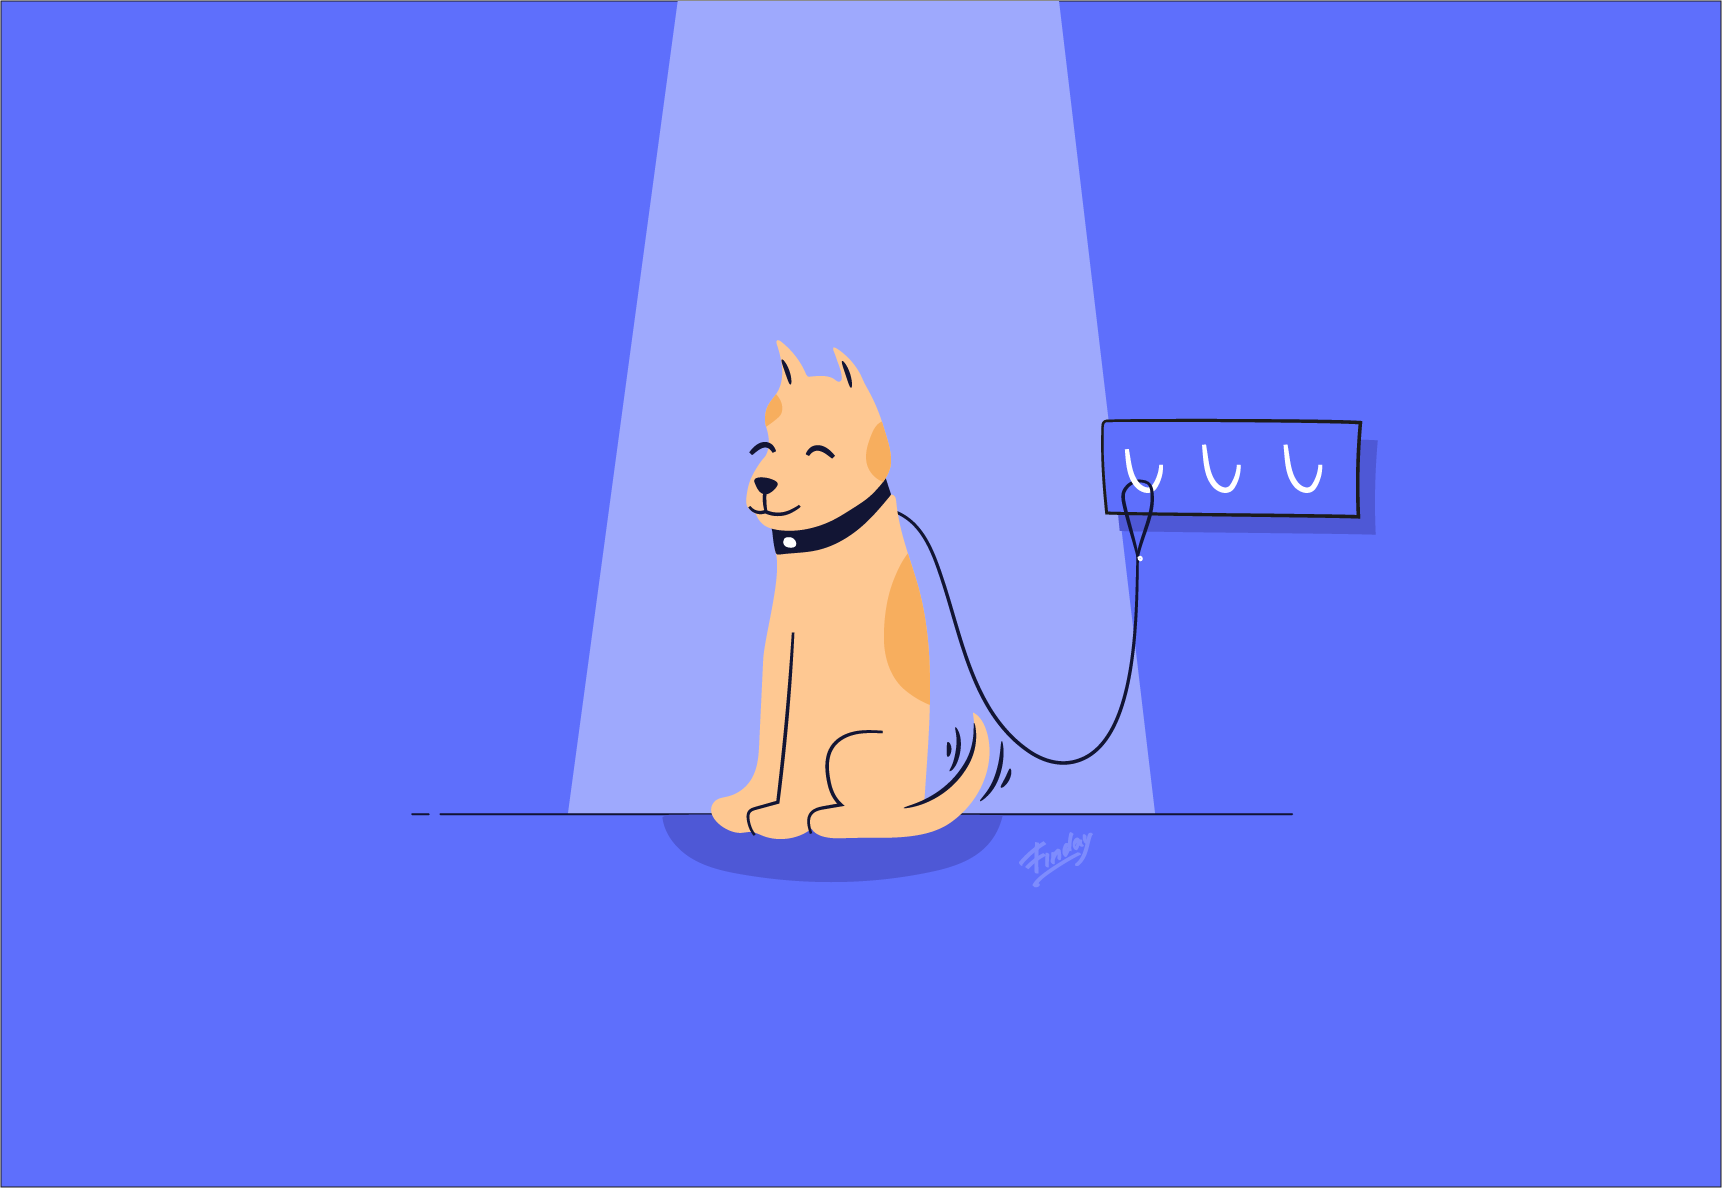 Illustration of a happy dog waiting for the owner